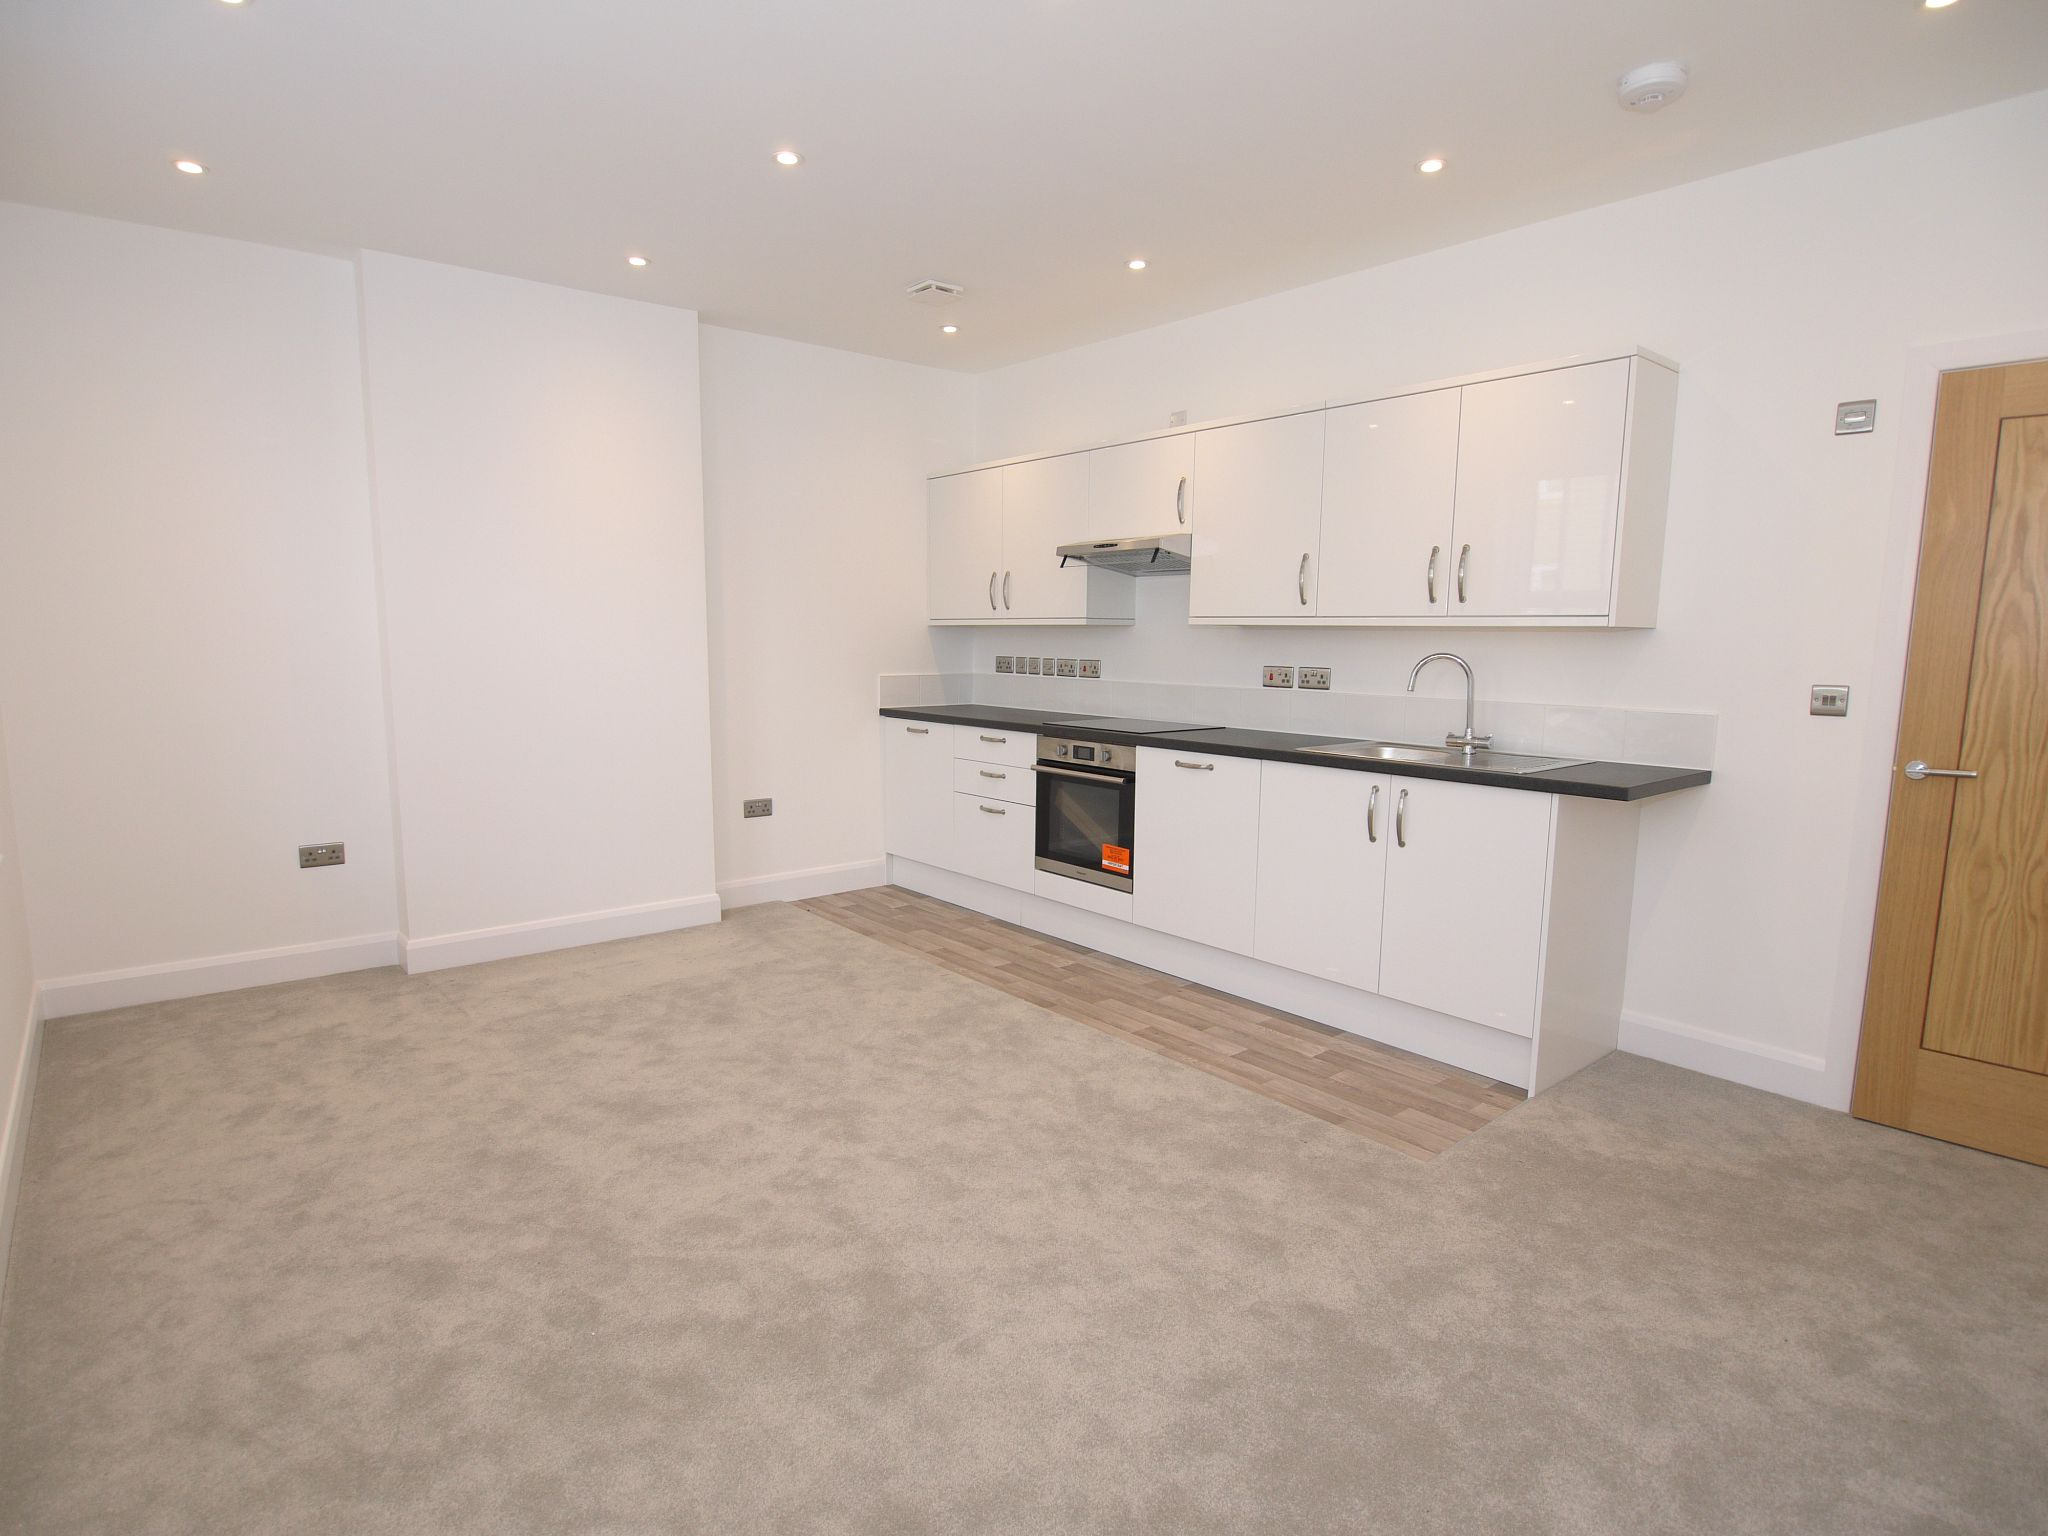 1 bedroom apartment flat/apartment For Sale in Sevenoaks - Photograph 4